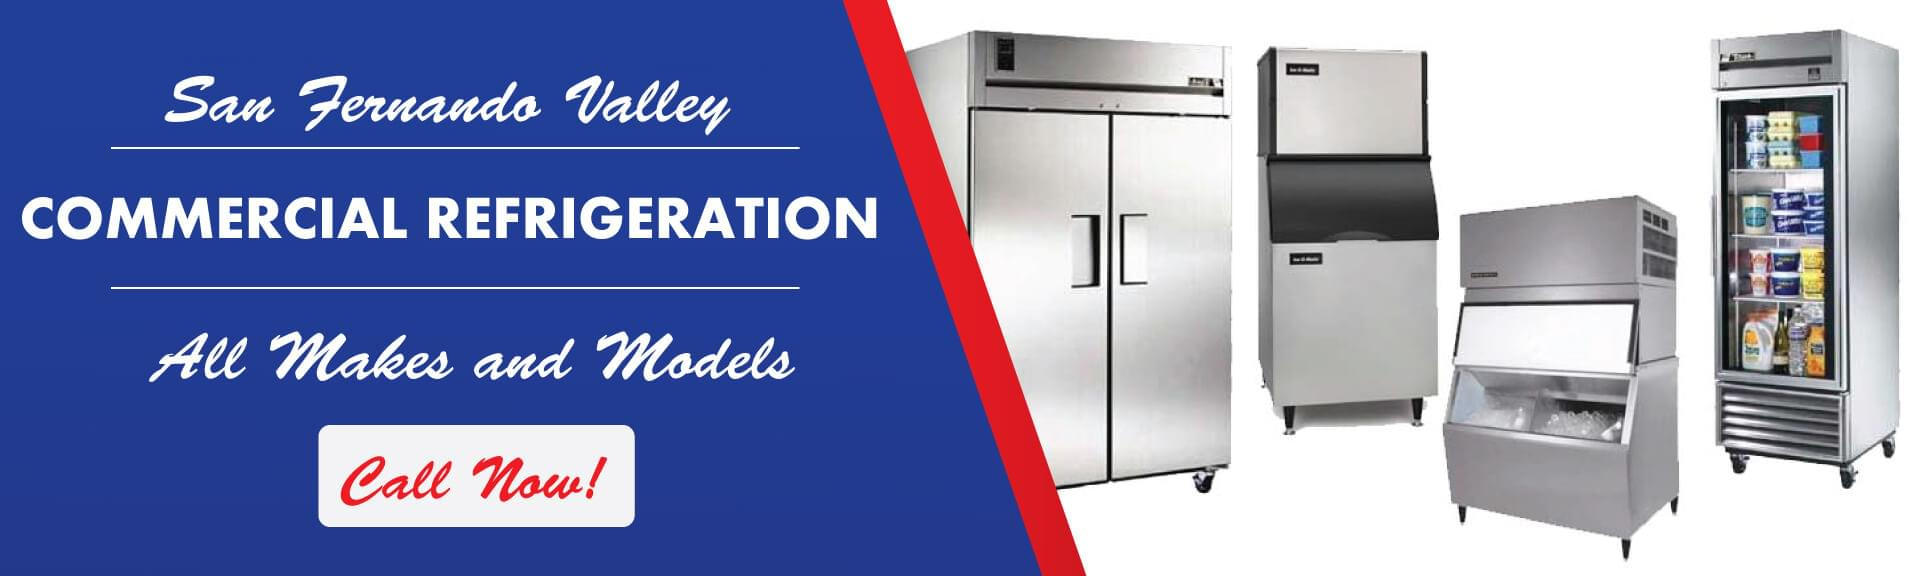 Commercial Refrigeration Repair San Fernando Valley By